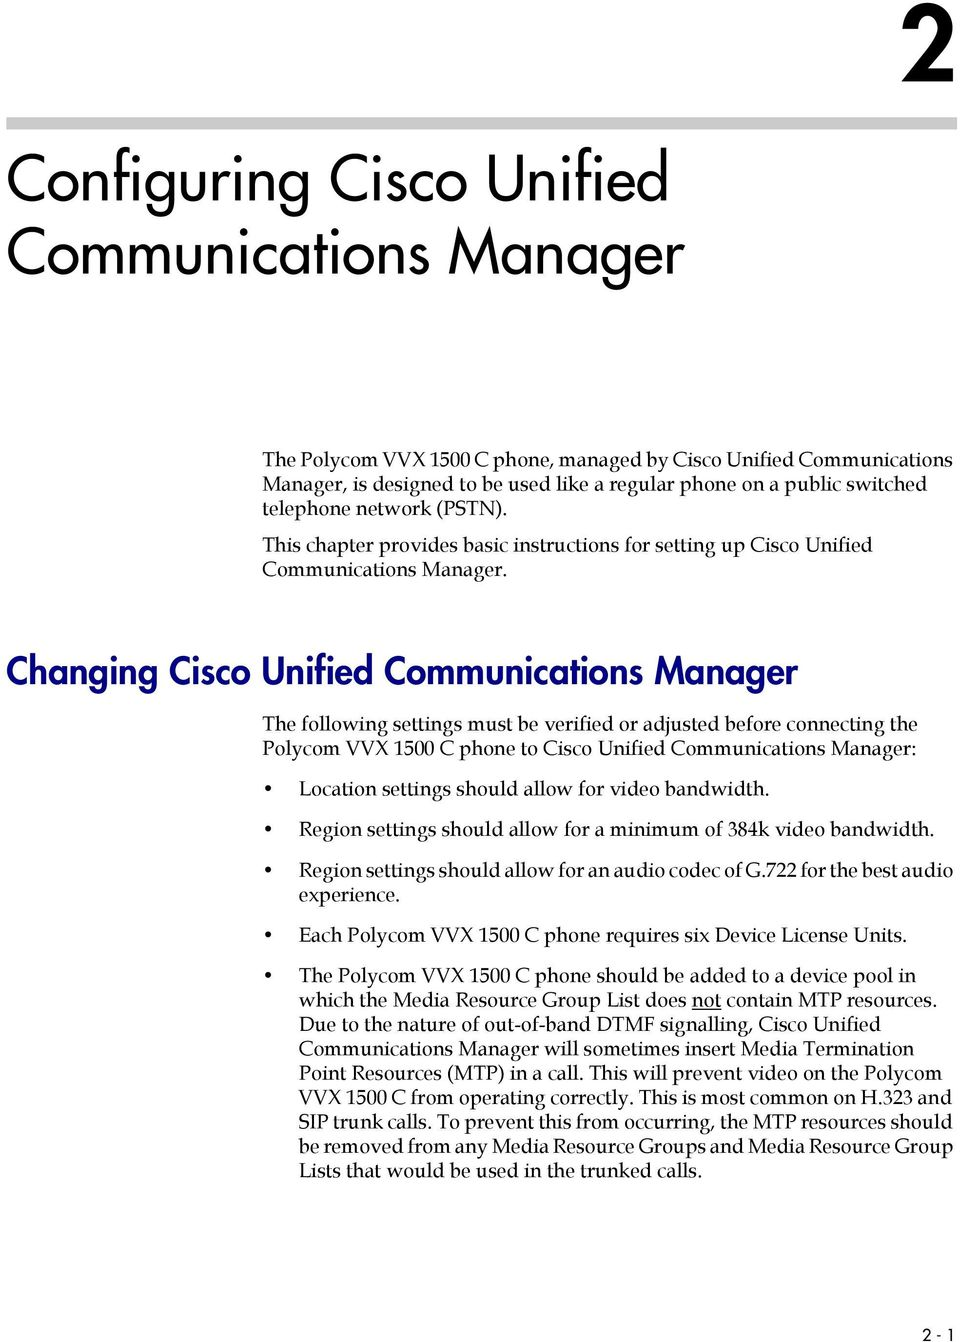 Changing Cisco Unified Communications Manager The following settings must be verified or adjusted before connecting the Polycom VVX 1500 C phone to Cisco Unified Communications Manager: Location